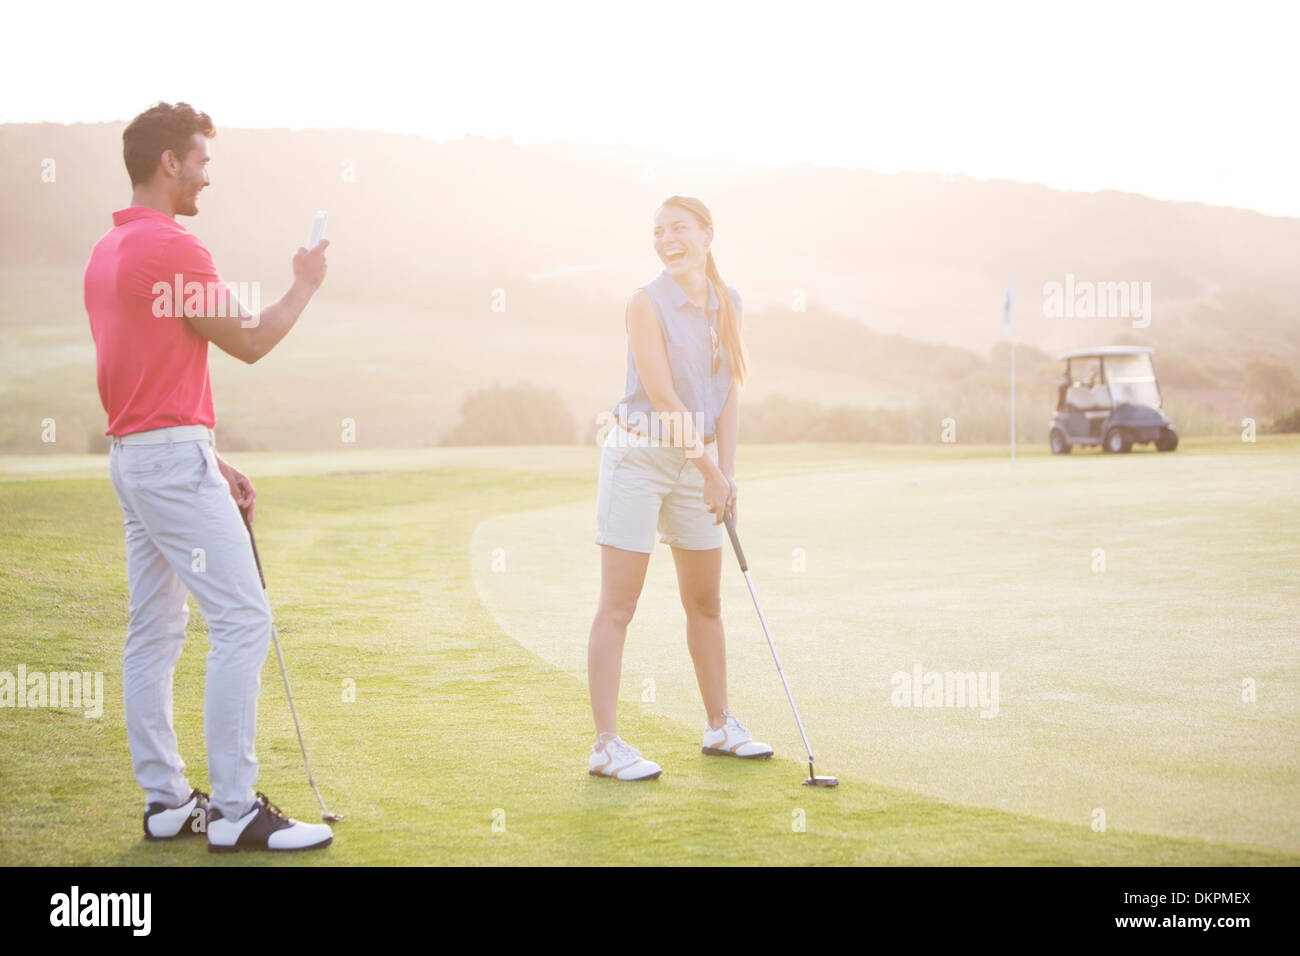 Couple playing golf - Stock Image